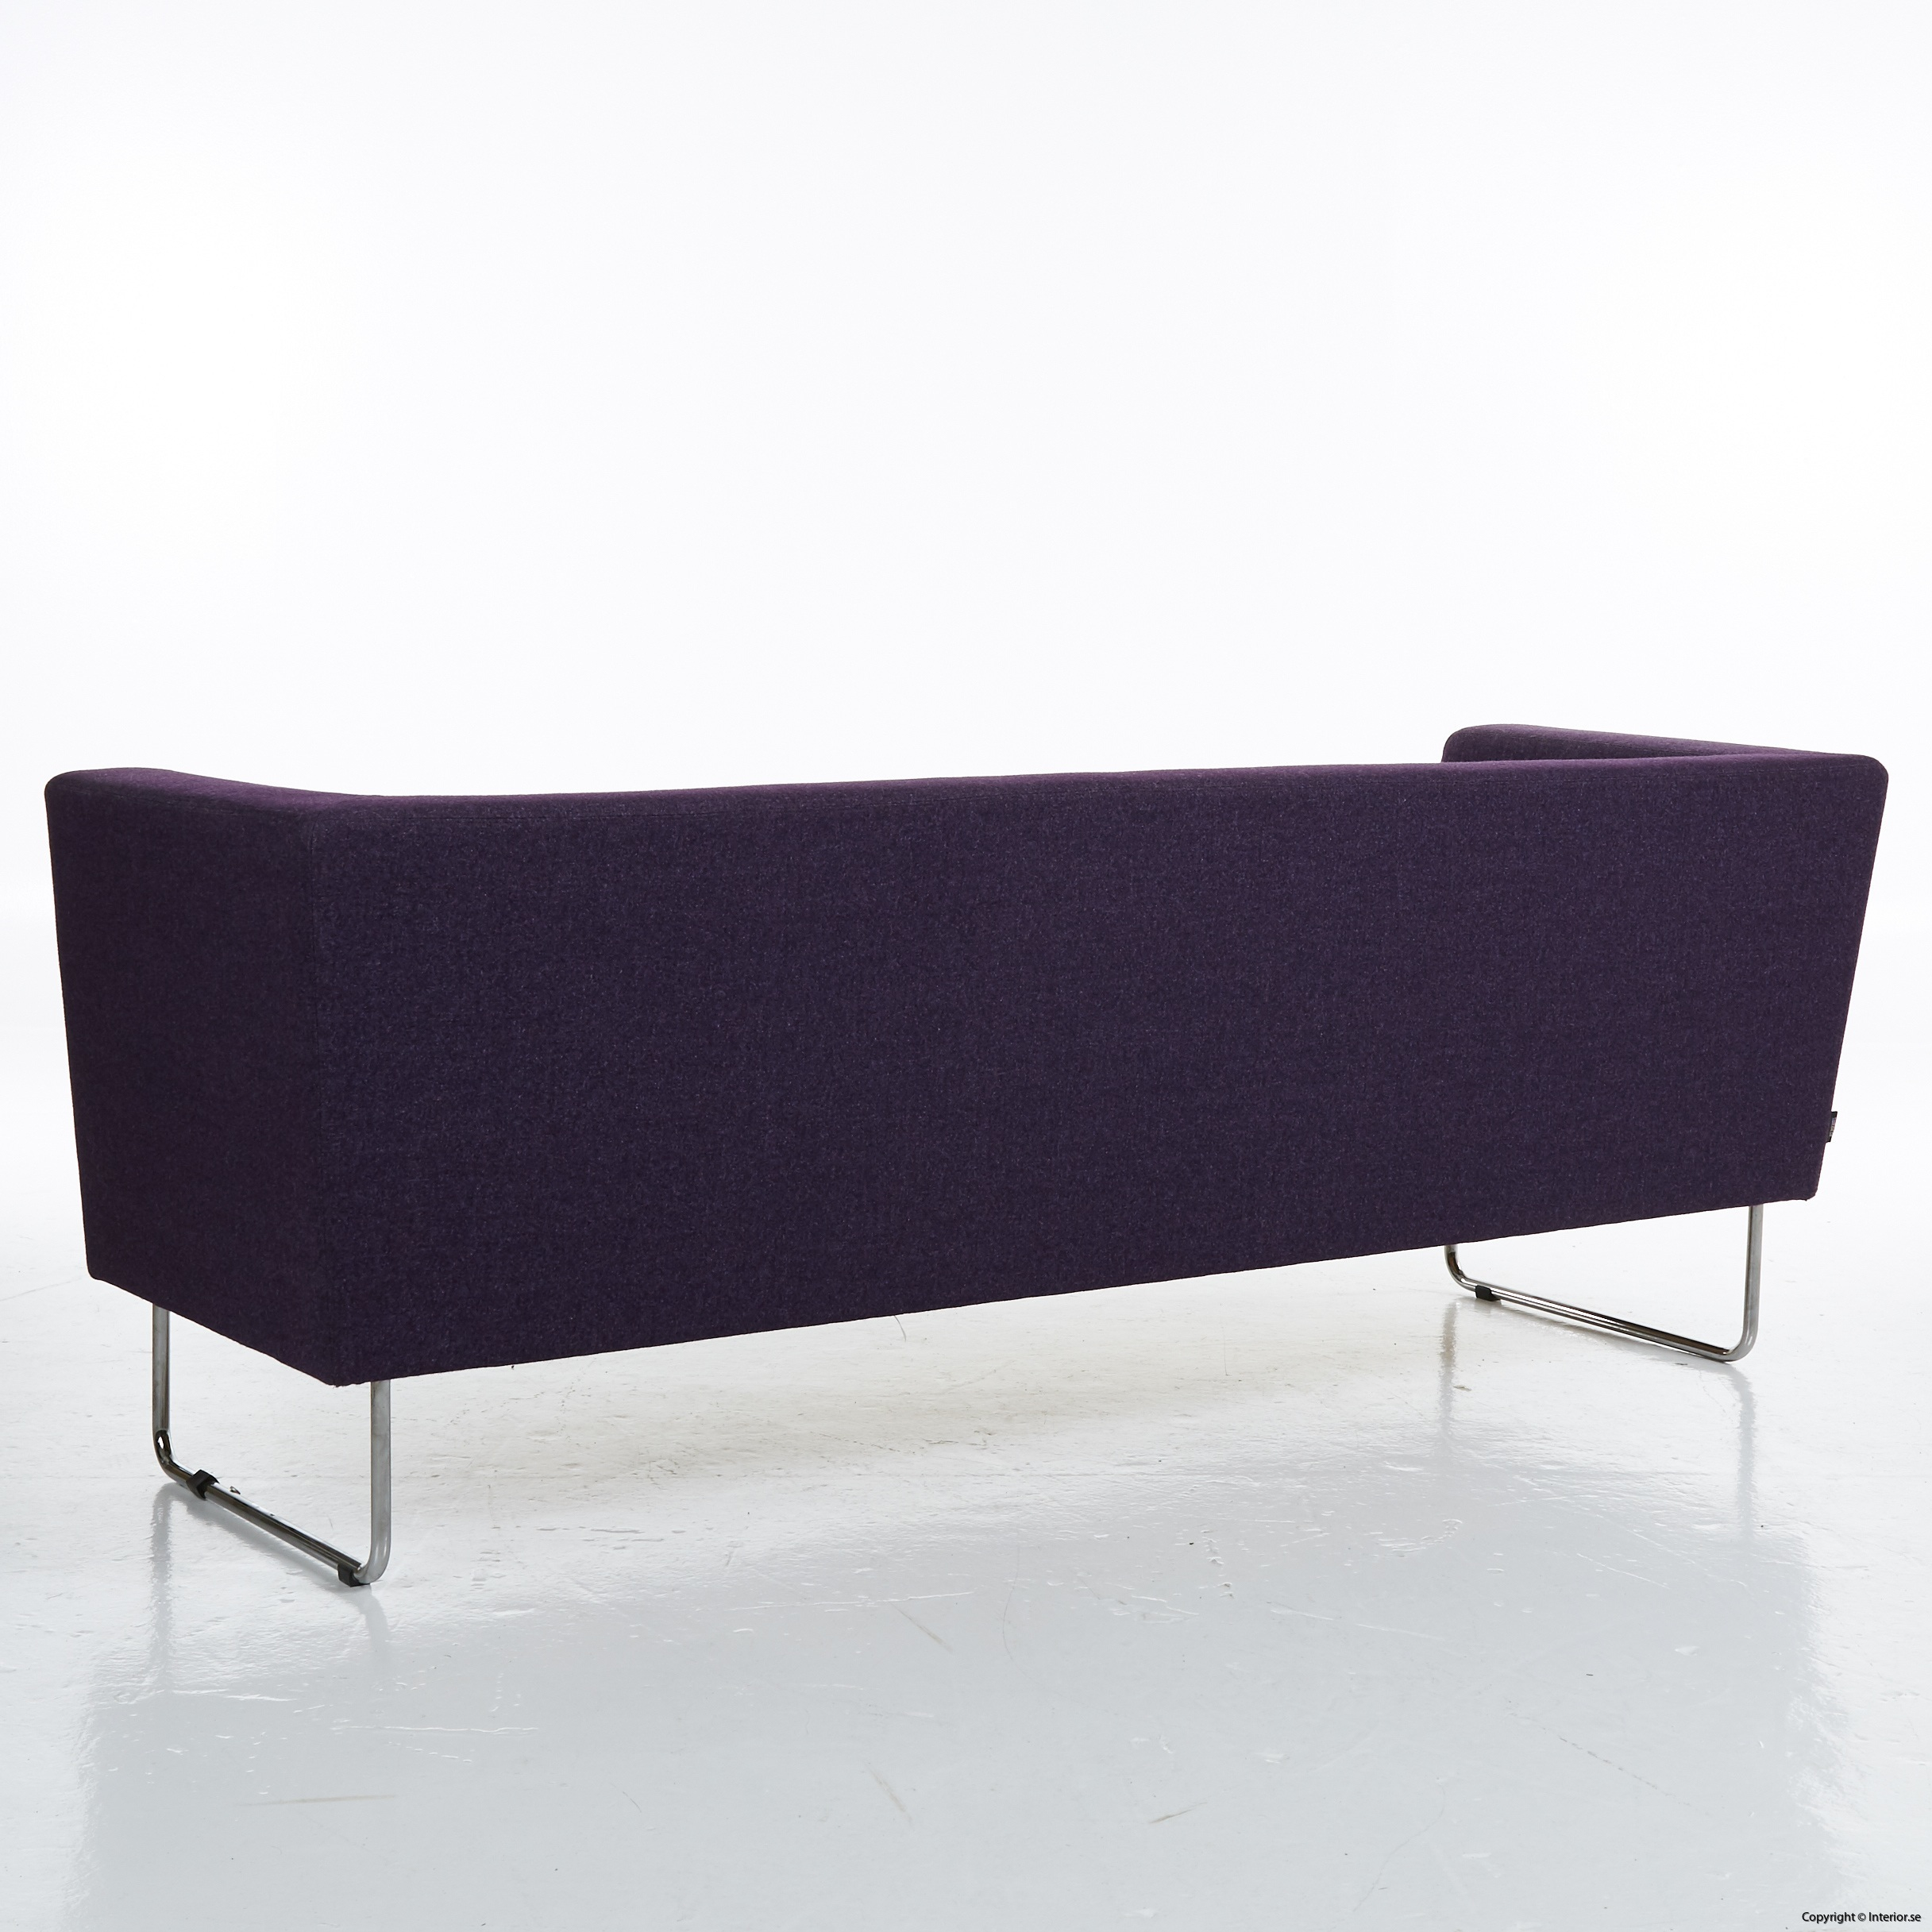 Soffa, Swedese Gap Lounge - 3-sits 6